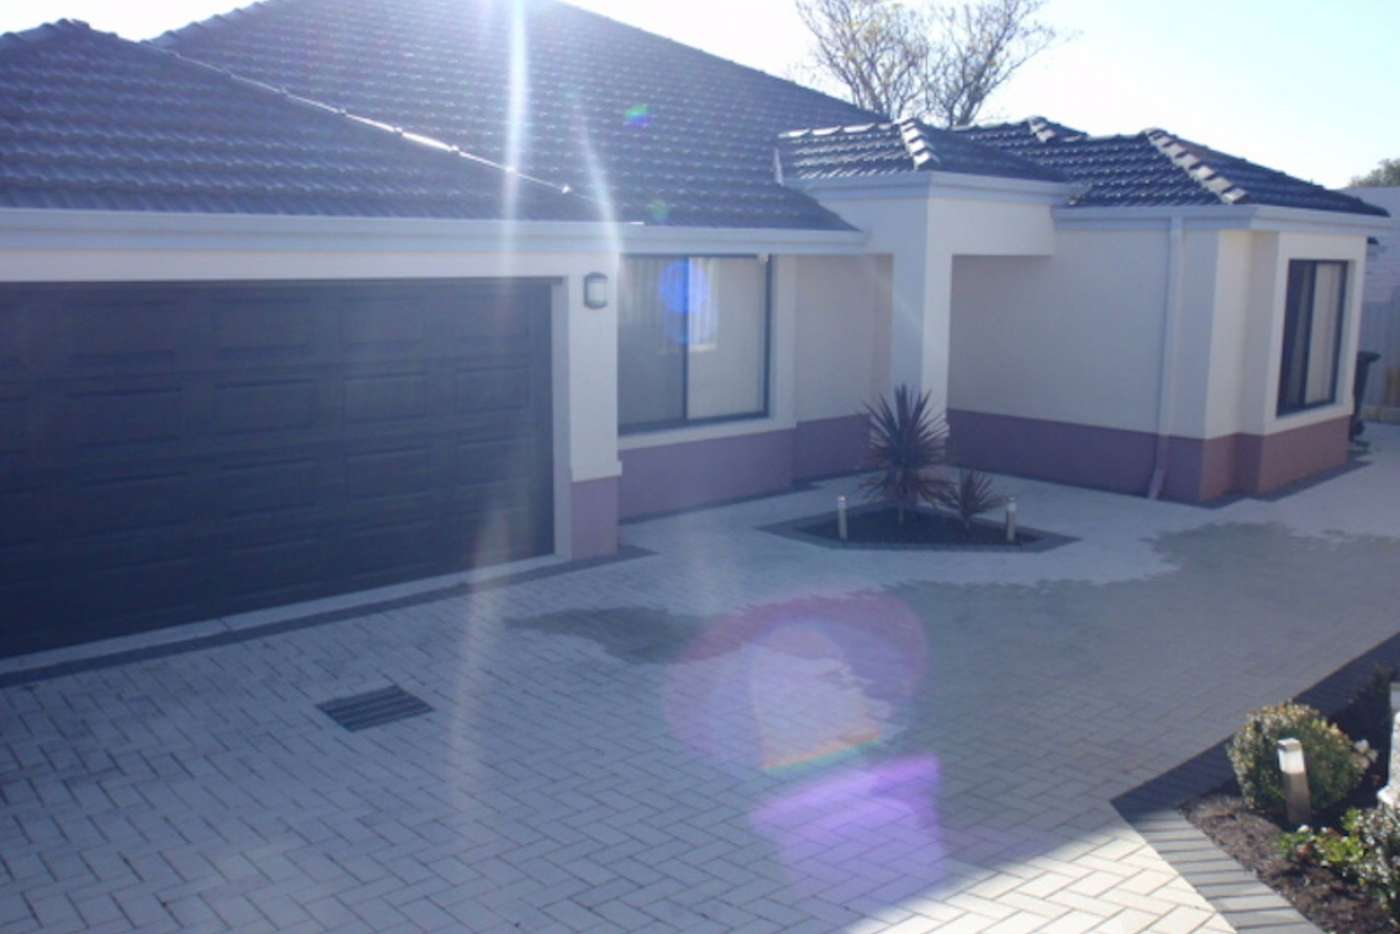 Main view of Homely house listing, 22A Boulton St, Dianella WA 6059